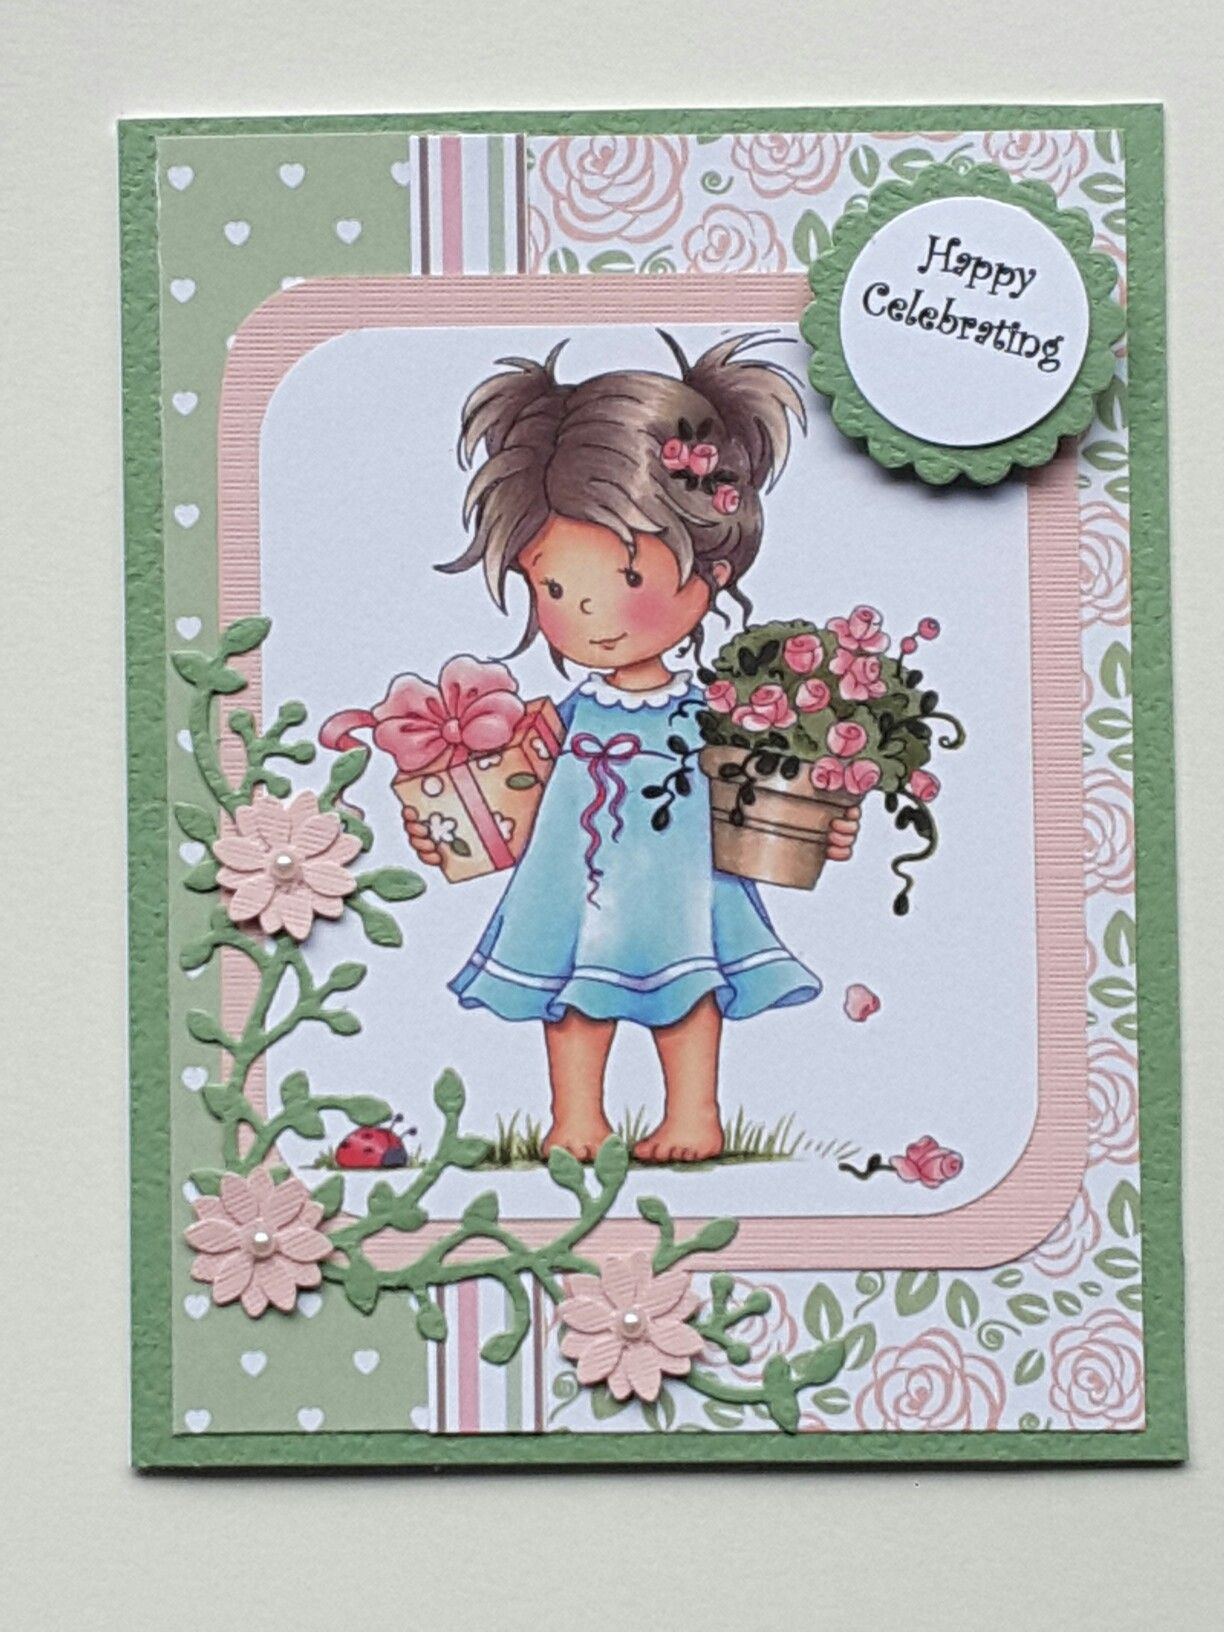 Girl with flowers and present birthday card birthday cards pinterest girl with flowers and present birthday card izmirmasajfo